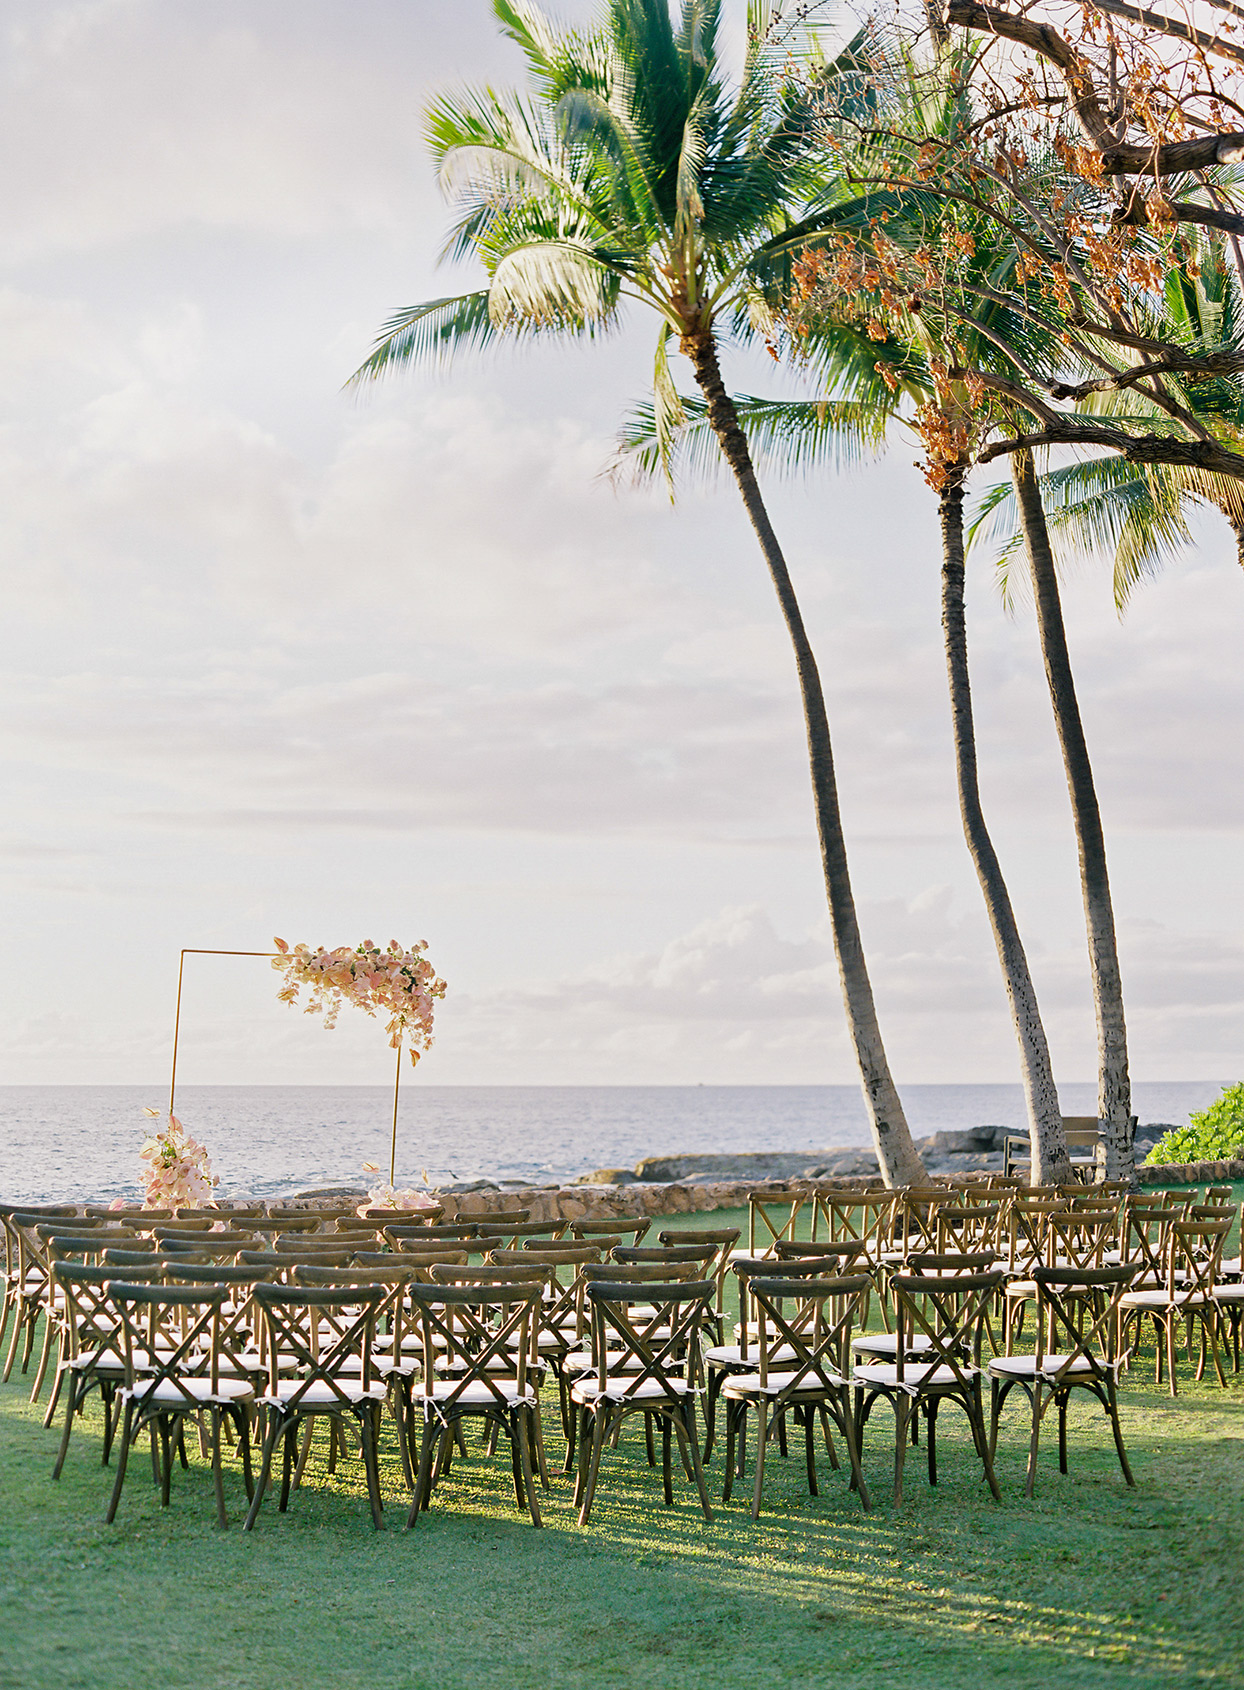 azuki sam wedding ceremony chairs set up by water